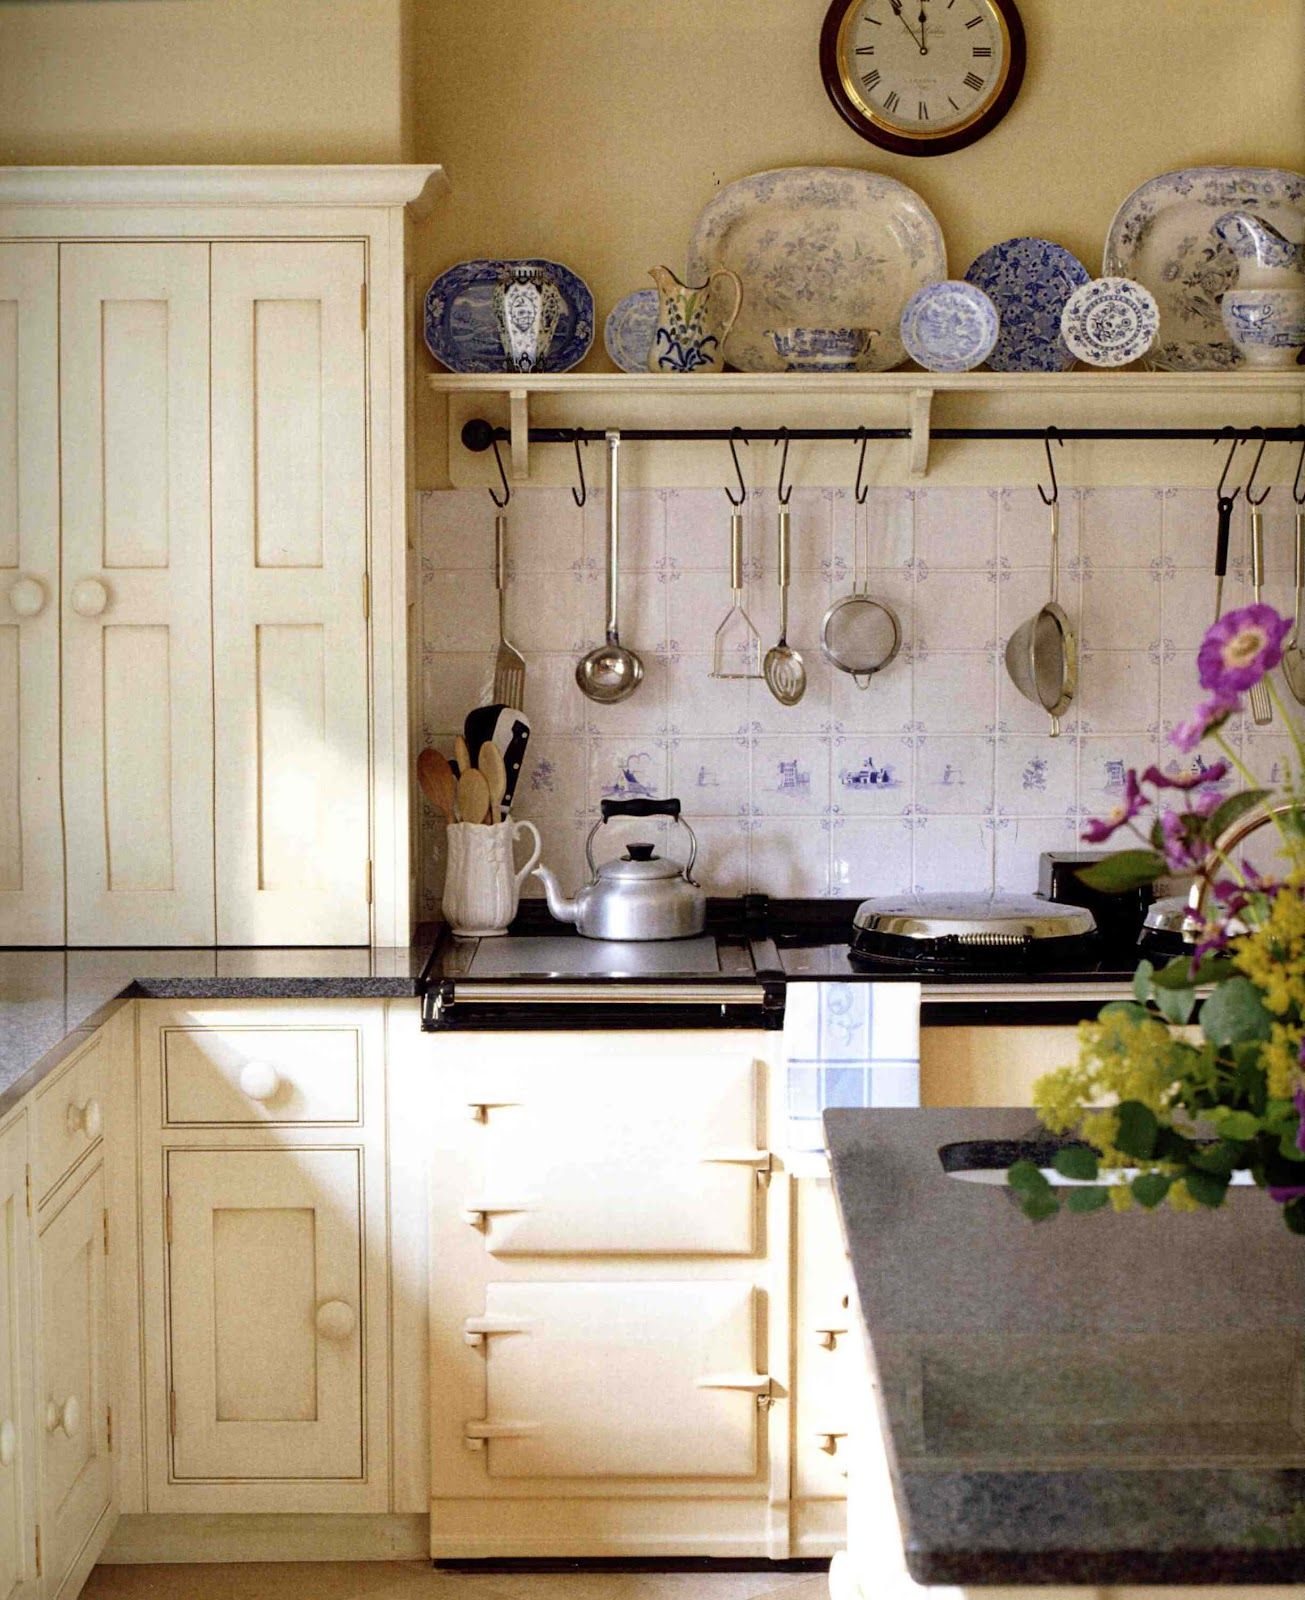 Cottage Kitchen Design Stunning English Cottage Kitchen  Donna's Art At Mourning Dove Cottage Decorating Inspiration